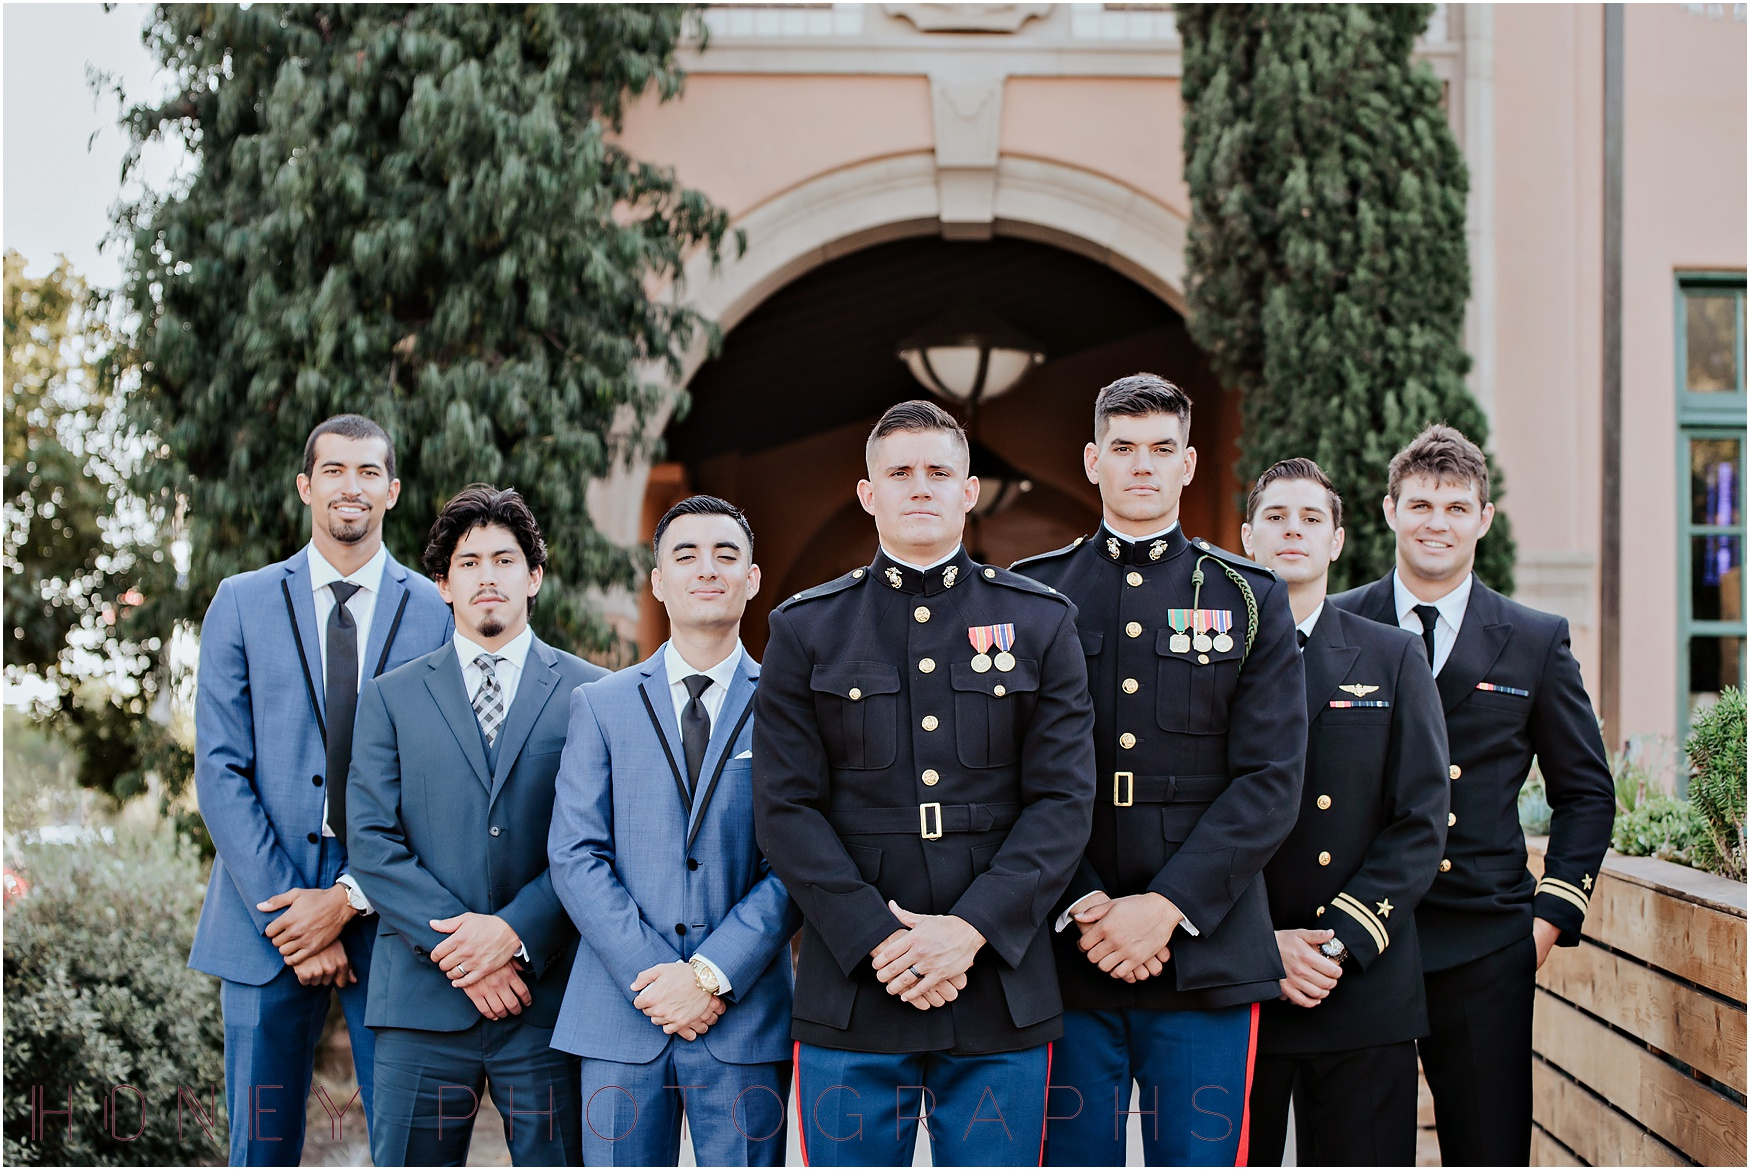 bricksandiegomilitaryurbanwedding0023.JPG